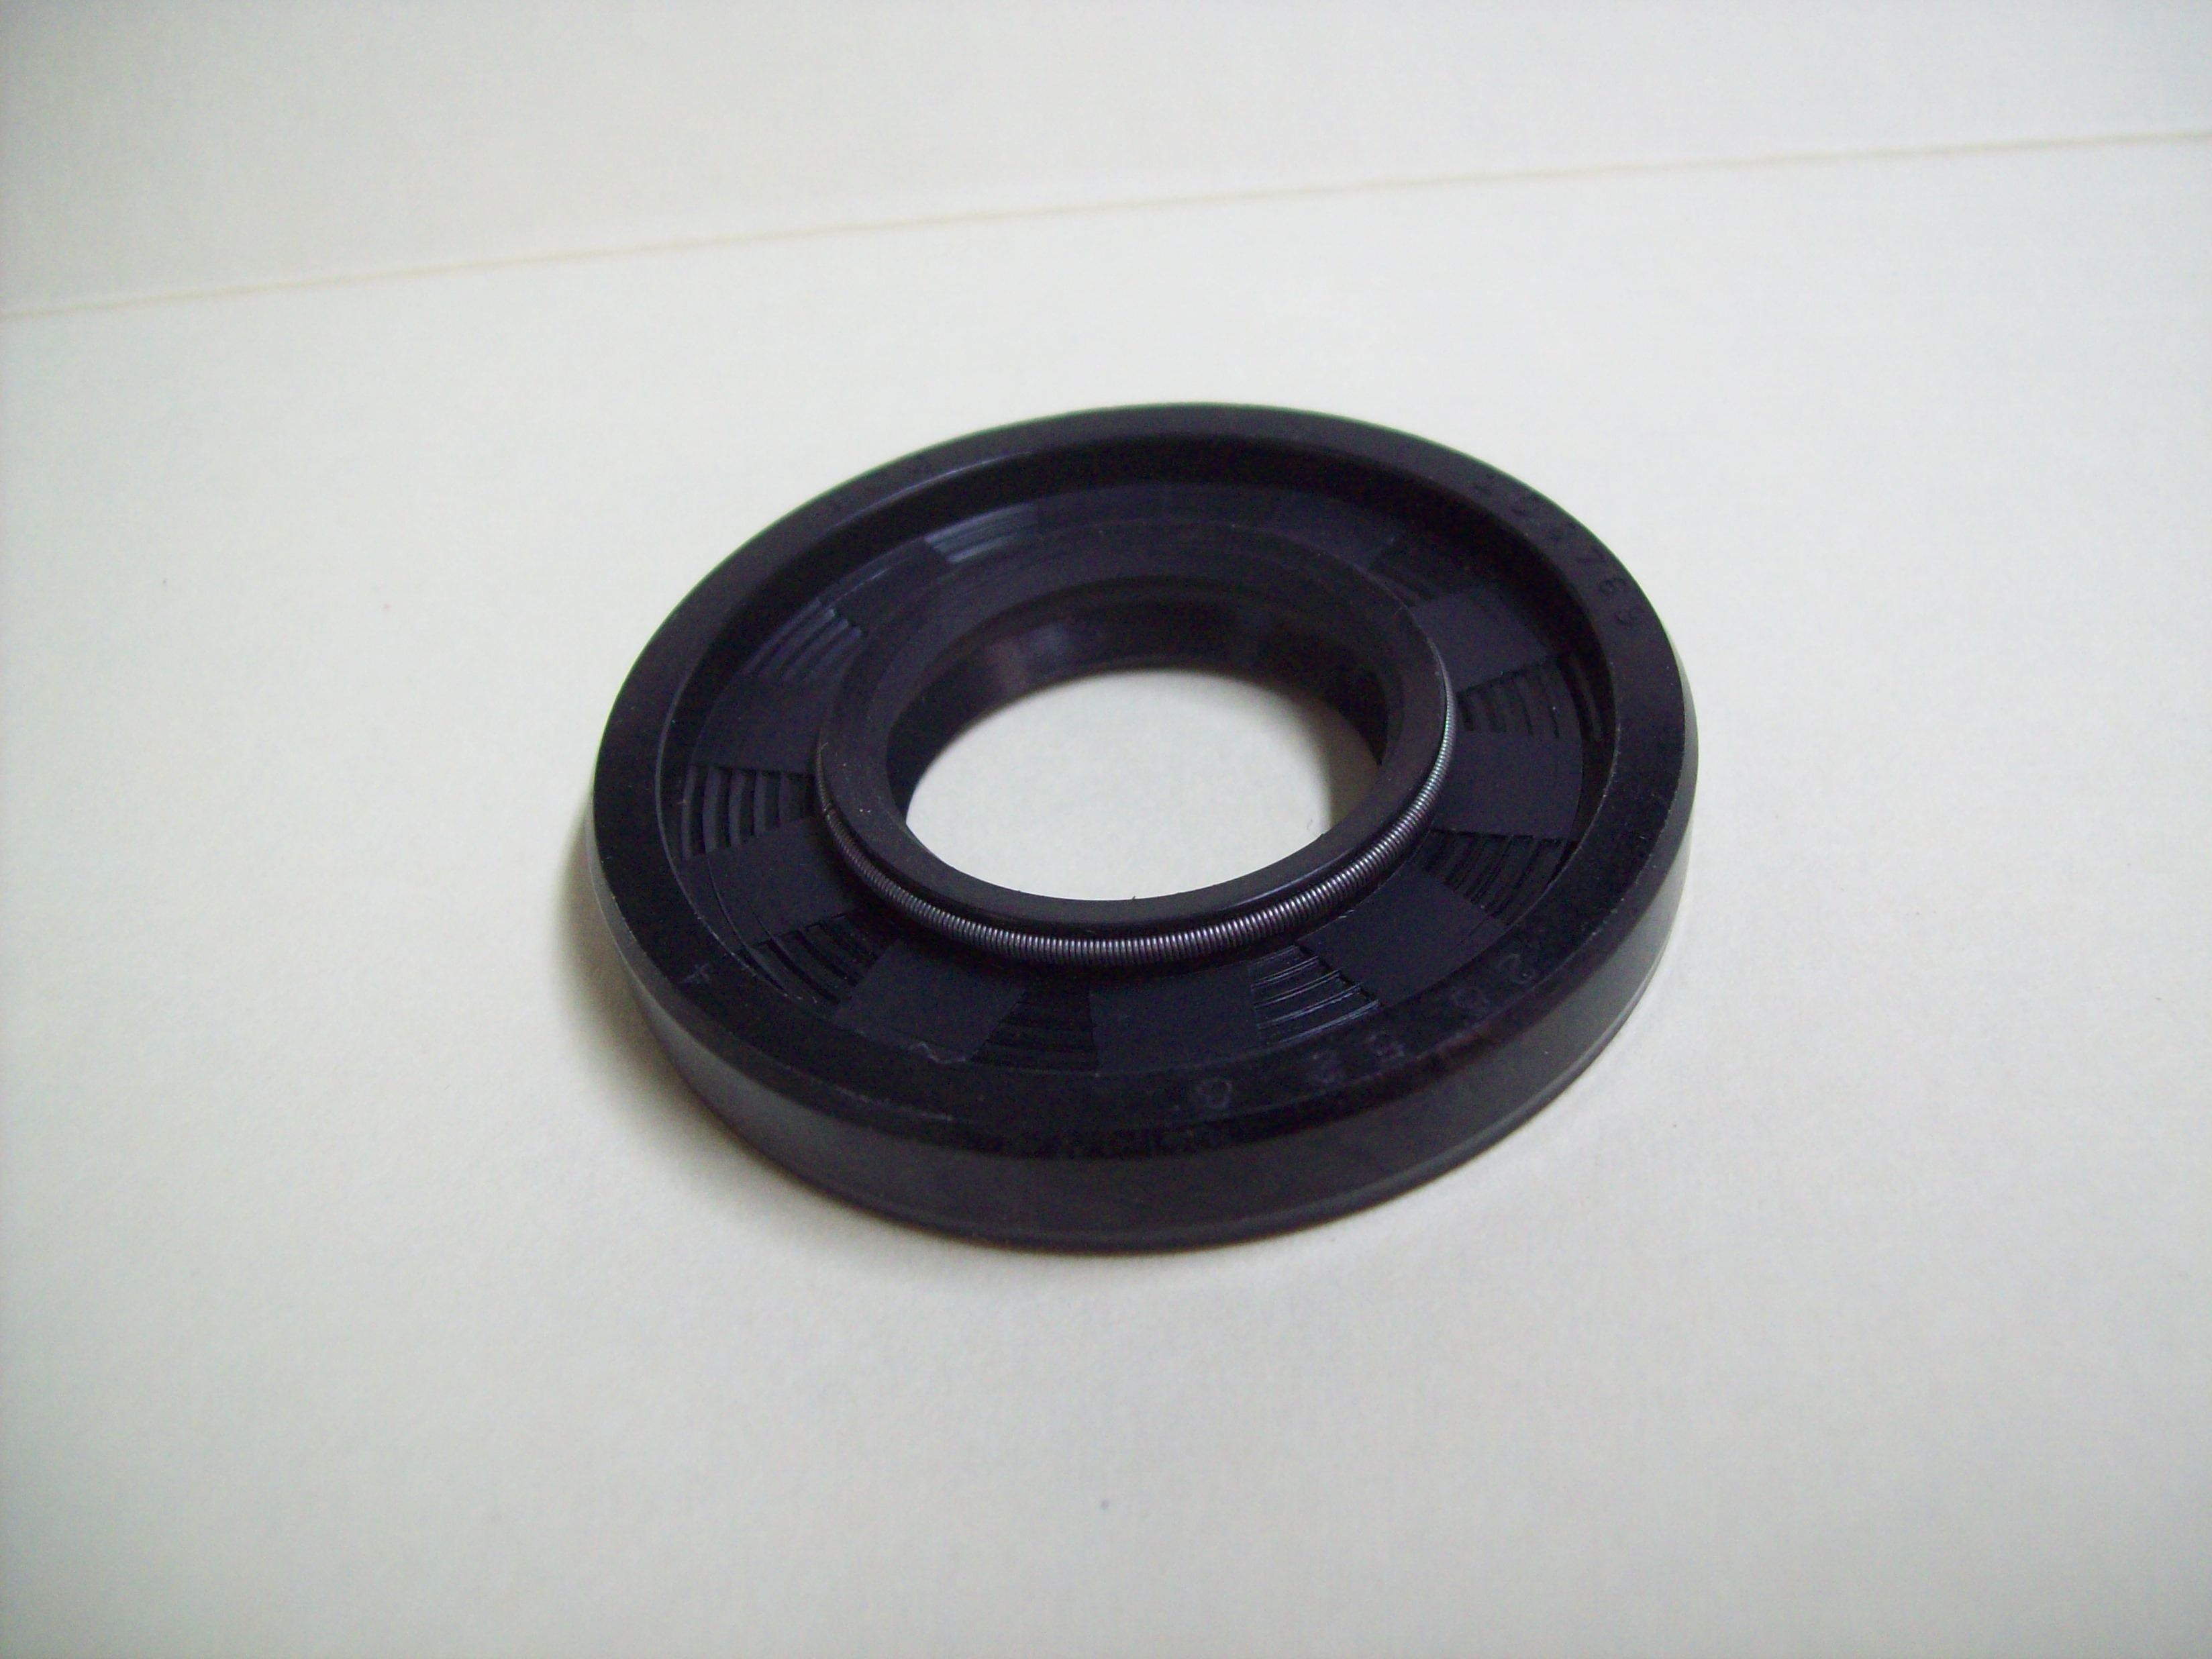 New Reproduction Ignition Side Crank Seal that fits 5 Speed Maico from 1975-1999